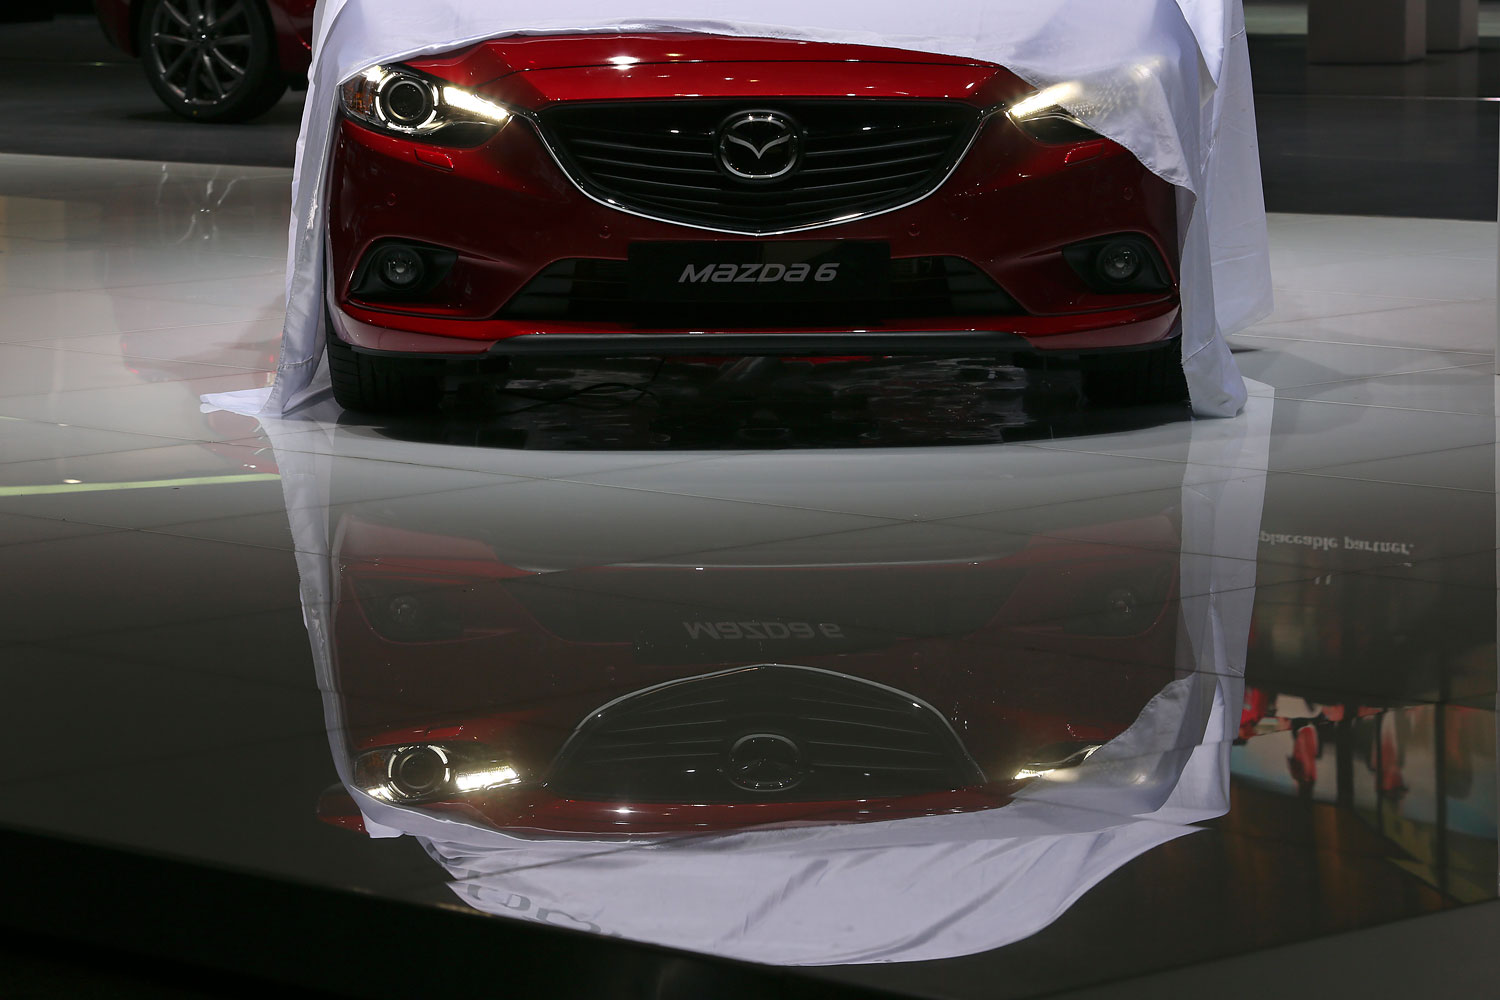 The front grille and bumper of a red Mazda 6 automobile, produced by Mazda Motor Corp., is reflected in the floor of the company's stand ahead of the opening day of the 84th Geneva International Motor Show in Geneva, March 3, 2014.